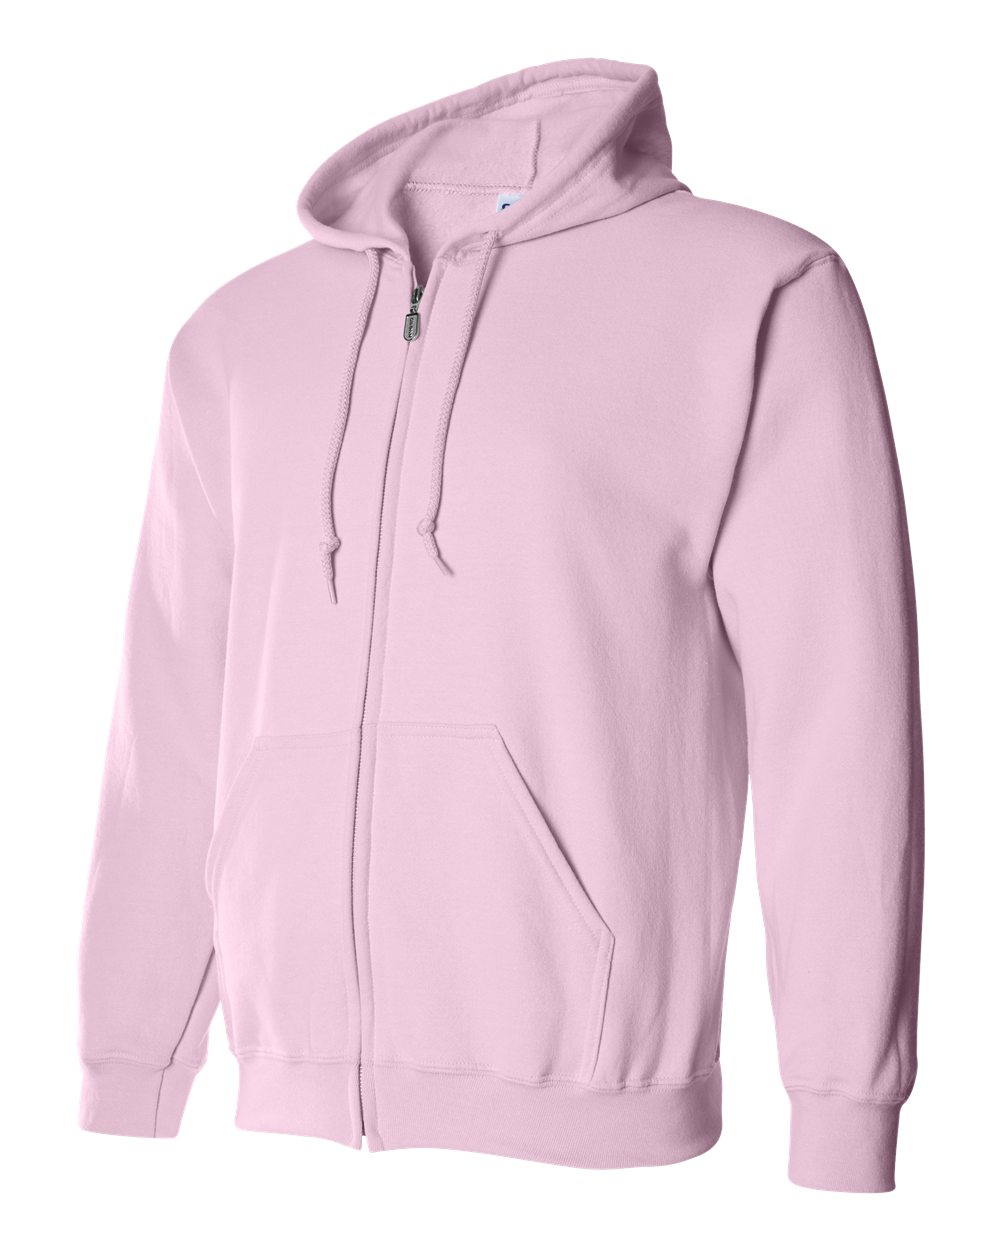 Gildan Heavy Blend Full Zip Hoodie GIL18600 Light Pink